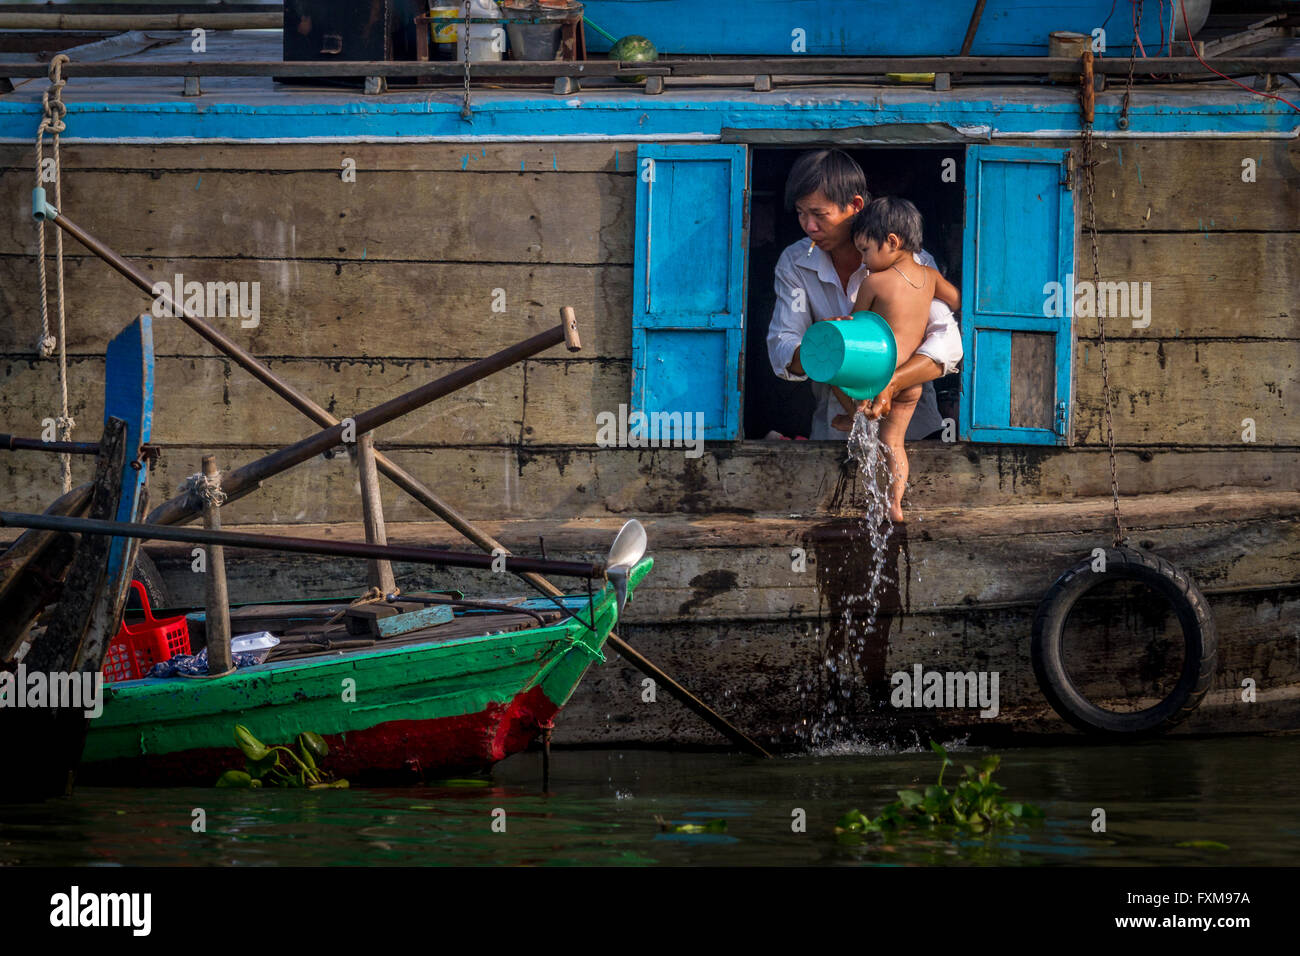 Floating village daily family life - family with child bathing on a house boat; Chau Doc, Mekong Delta, Vietnam - Stock Image